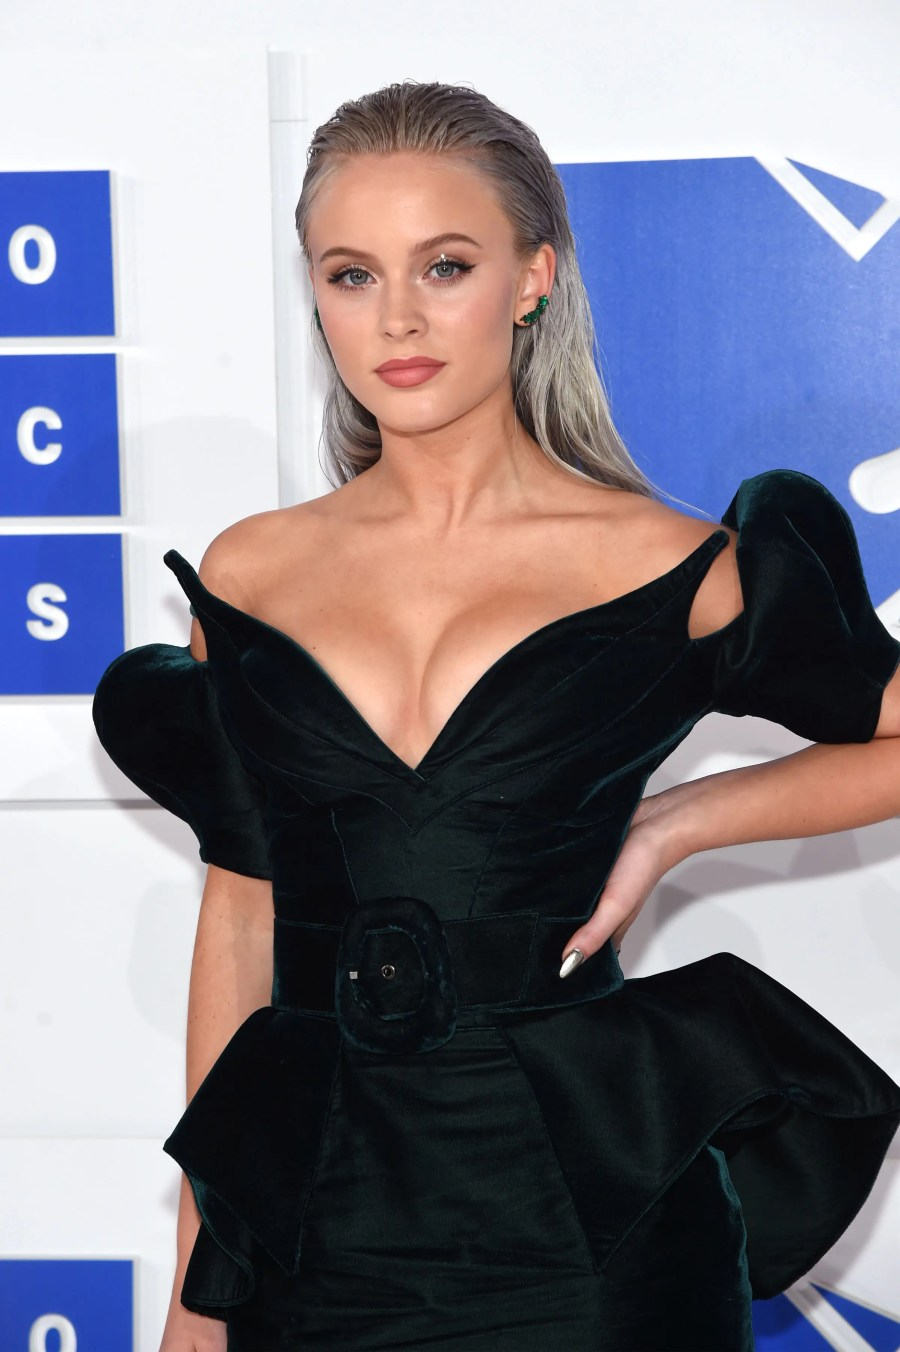 NEW YORK, NY - AUGUST 28: Zara Larsson attends the 2016 MTV Video Music Awards at Madison Square Garden on August 28, 2016 in New York City. Jamie McCarthy/Getty Images/AFP